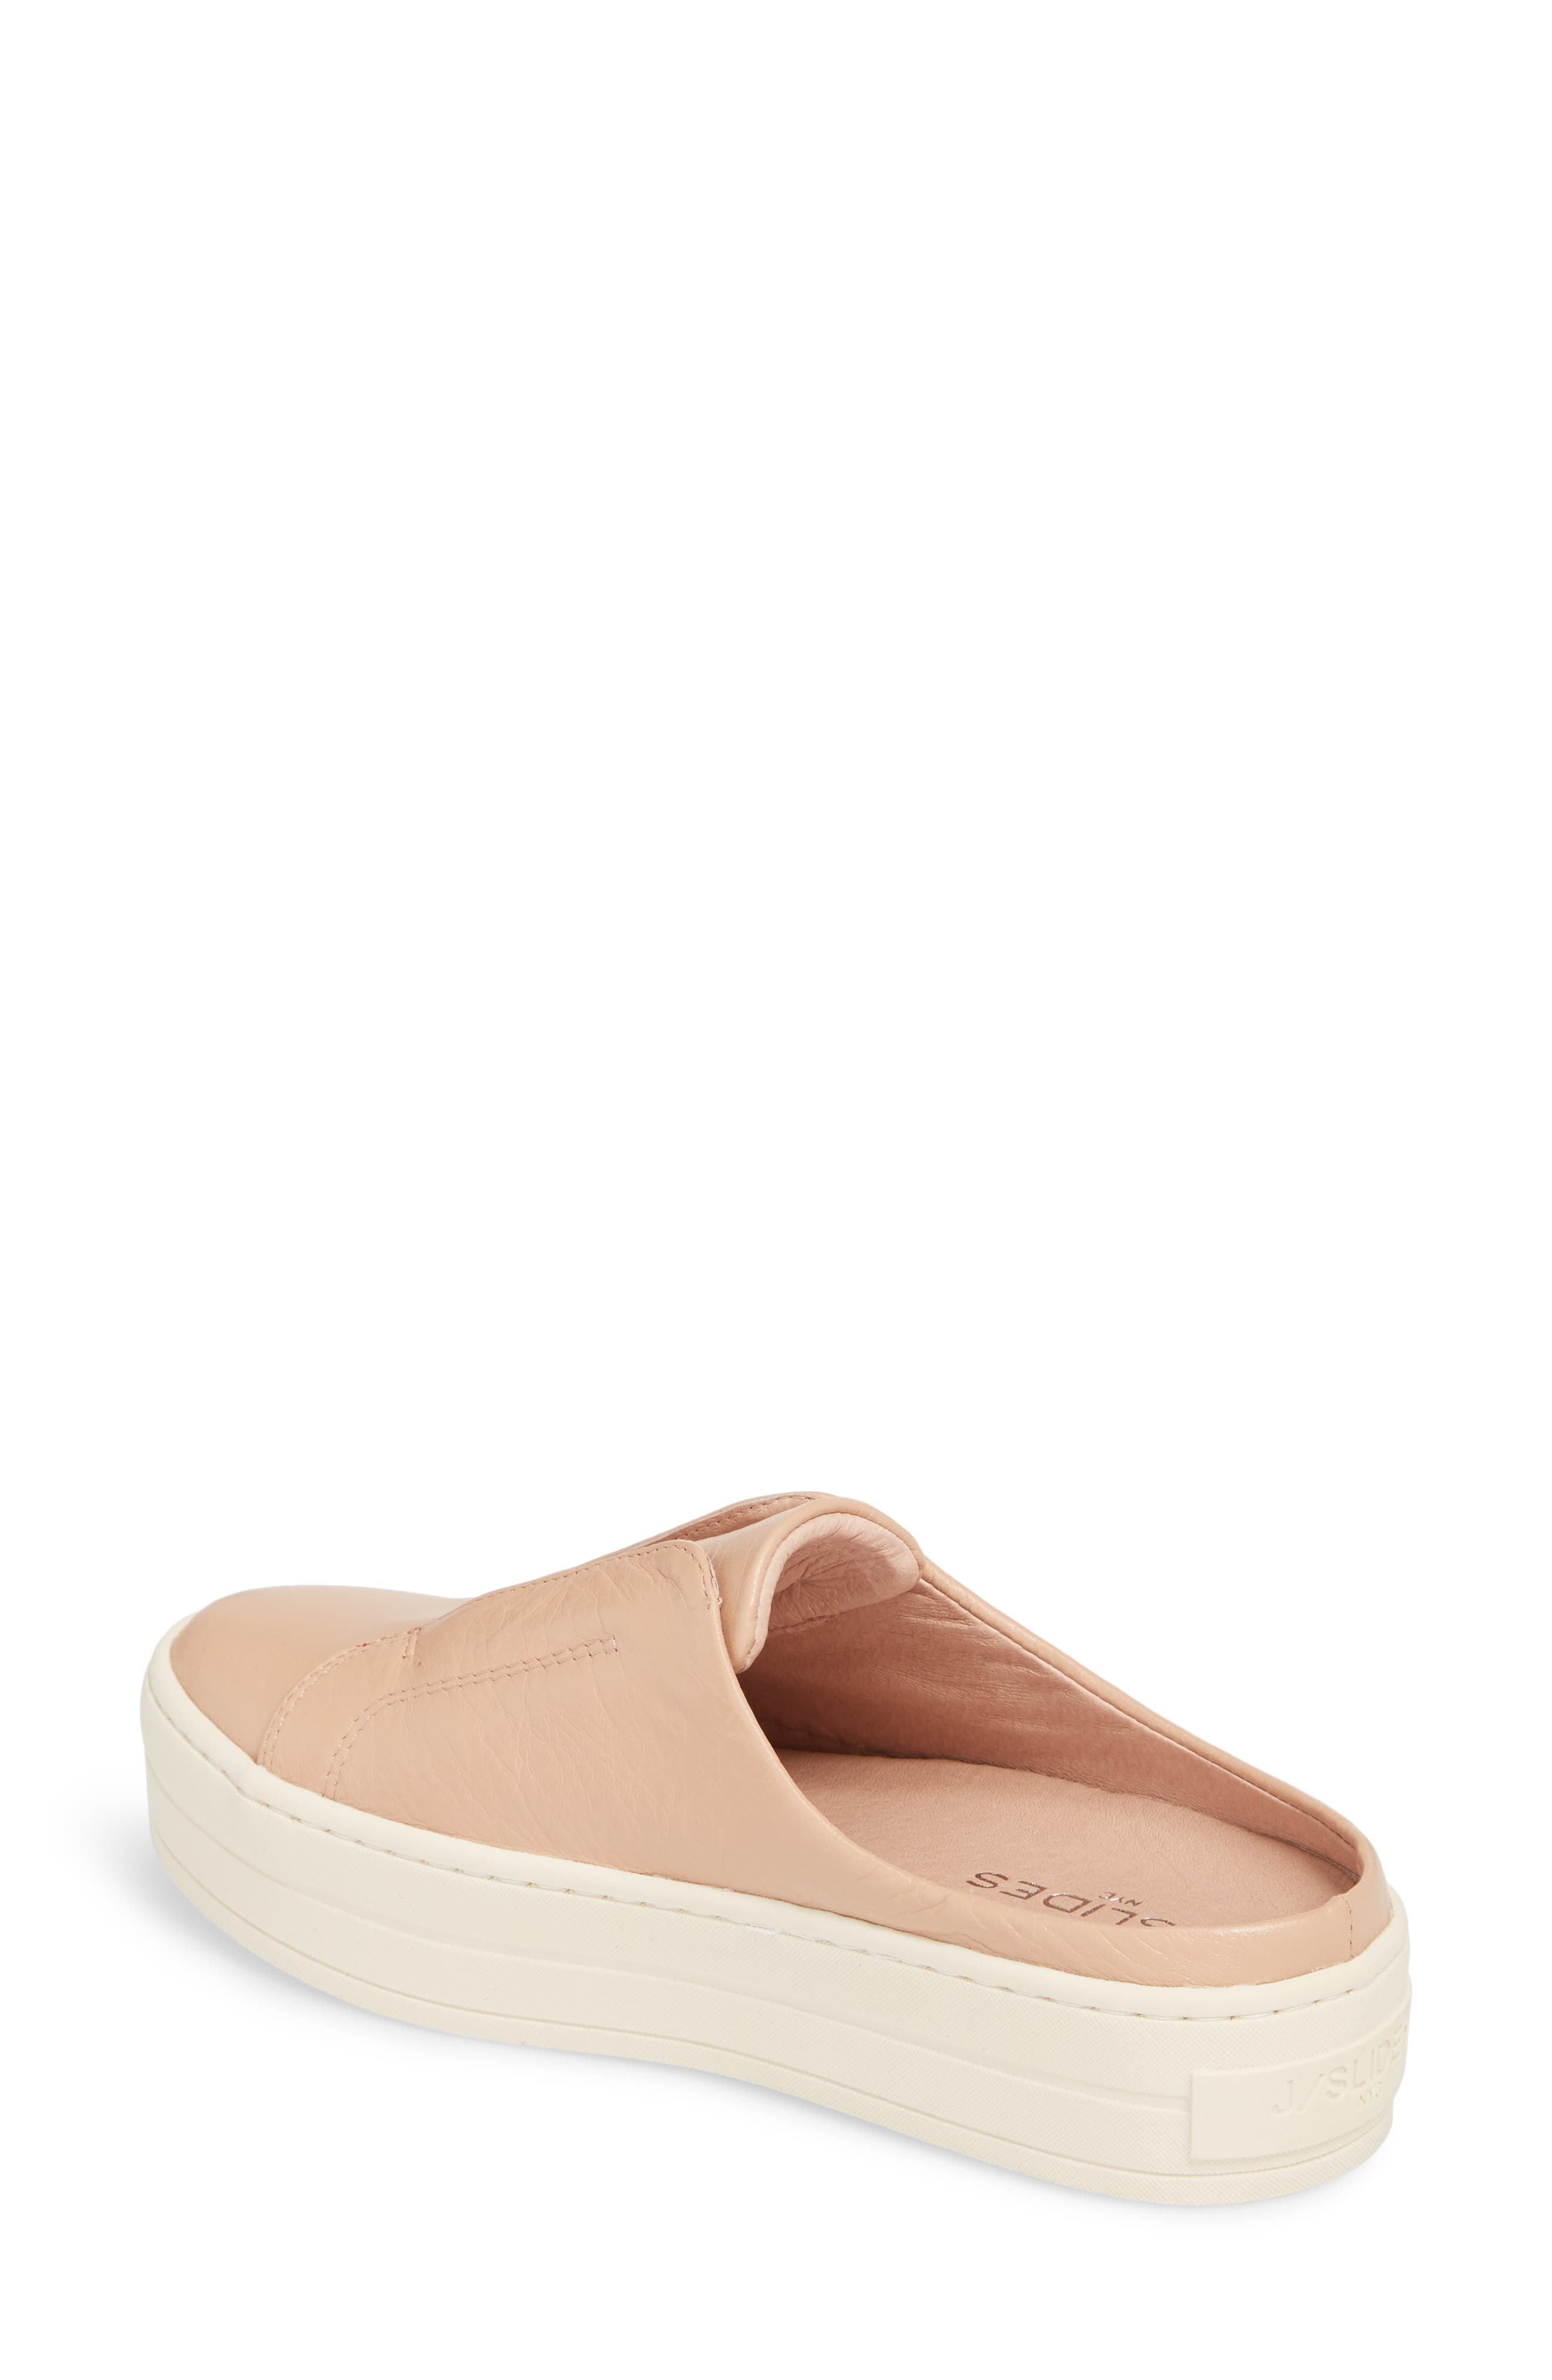 Hara Sneaker Mule,                             Alternate thumbnail 2, color,                             BLUSH SUEDE